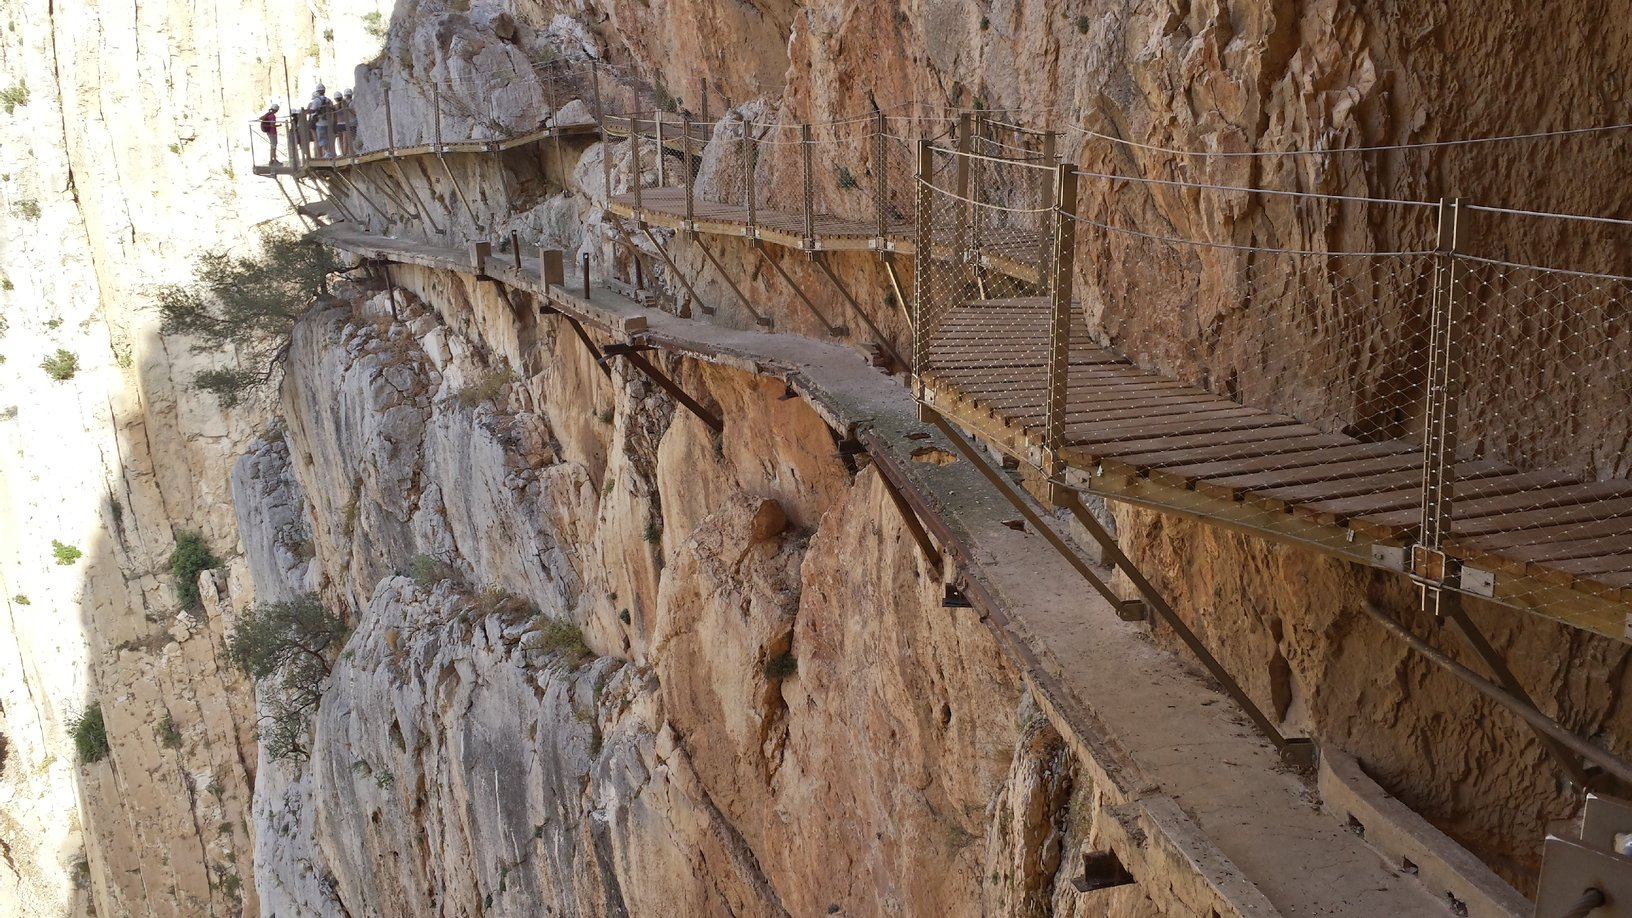 El Caminito Del Rey How To Survive The Worlds Deadliest